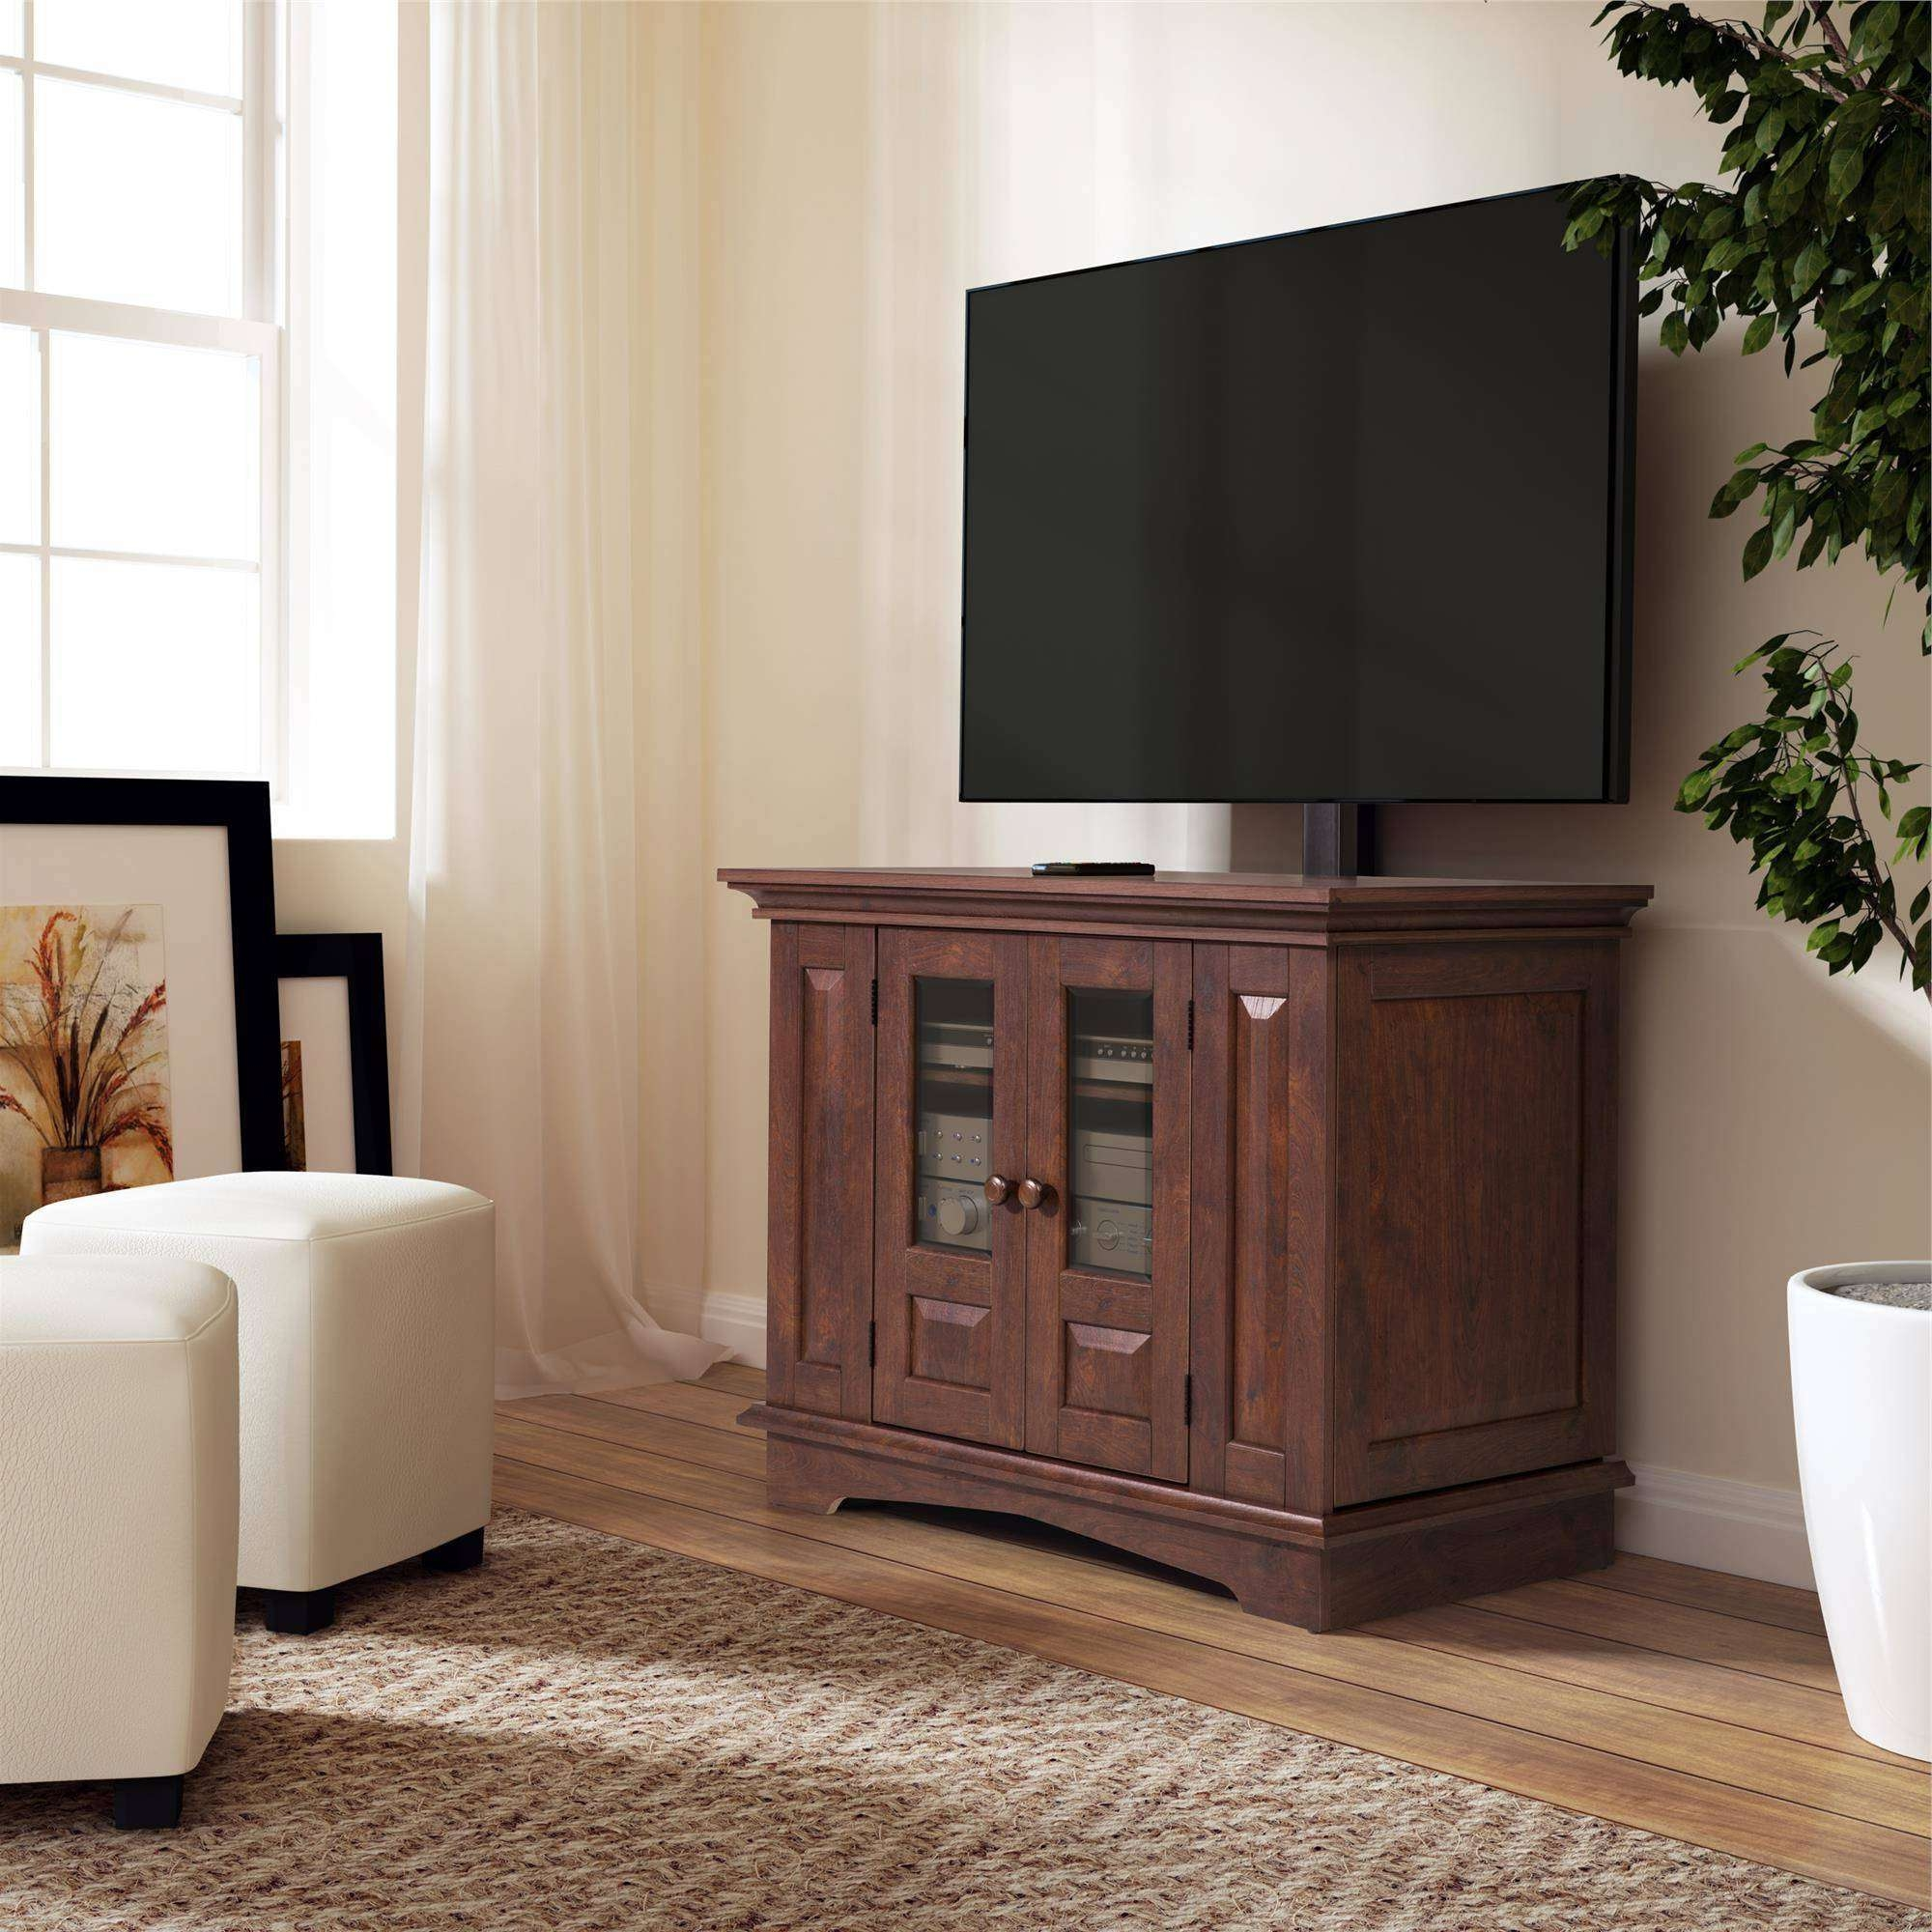 Tv Stand With Mount Tv Stands – Walmart Regarding Tv Stands 40 Inches Wide (View 10 of 15)